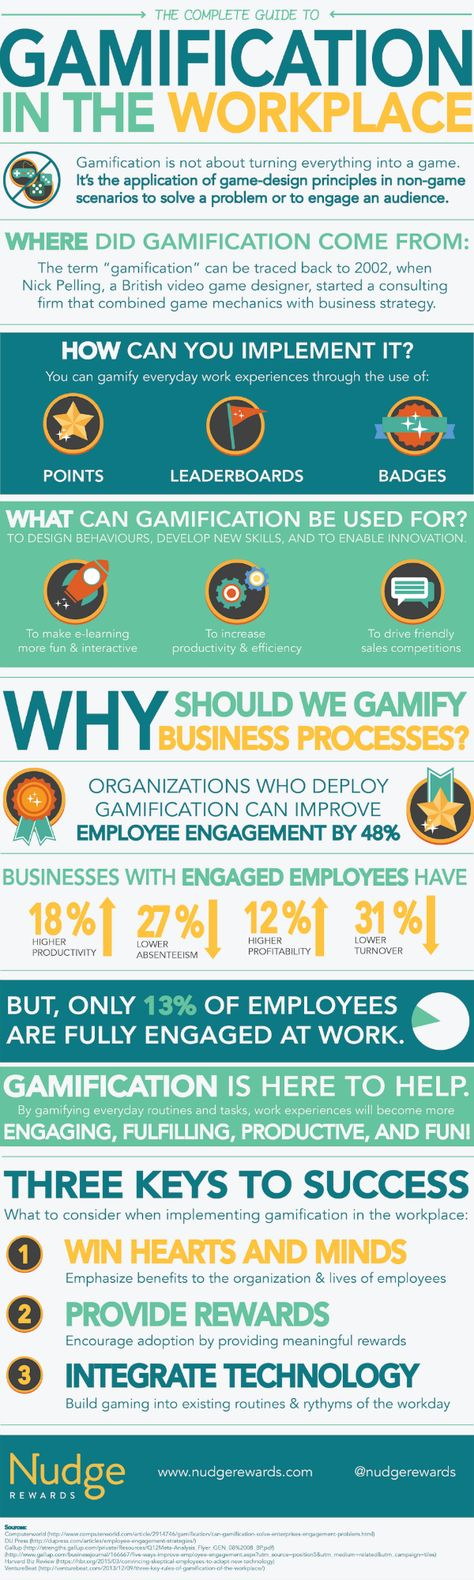 gamification of the workplace As the market leader and innovator in gamification, bunchball's gamification solutions have motivated more than 125 million users to complete more than 20 billion actions on behalf of over 300 customers.